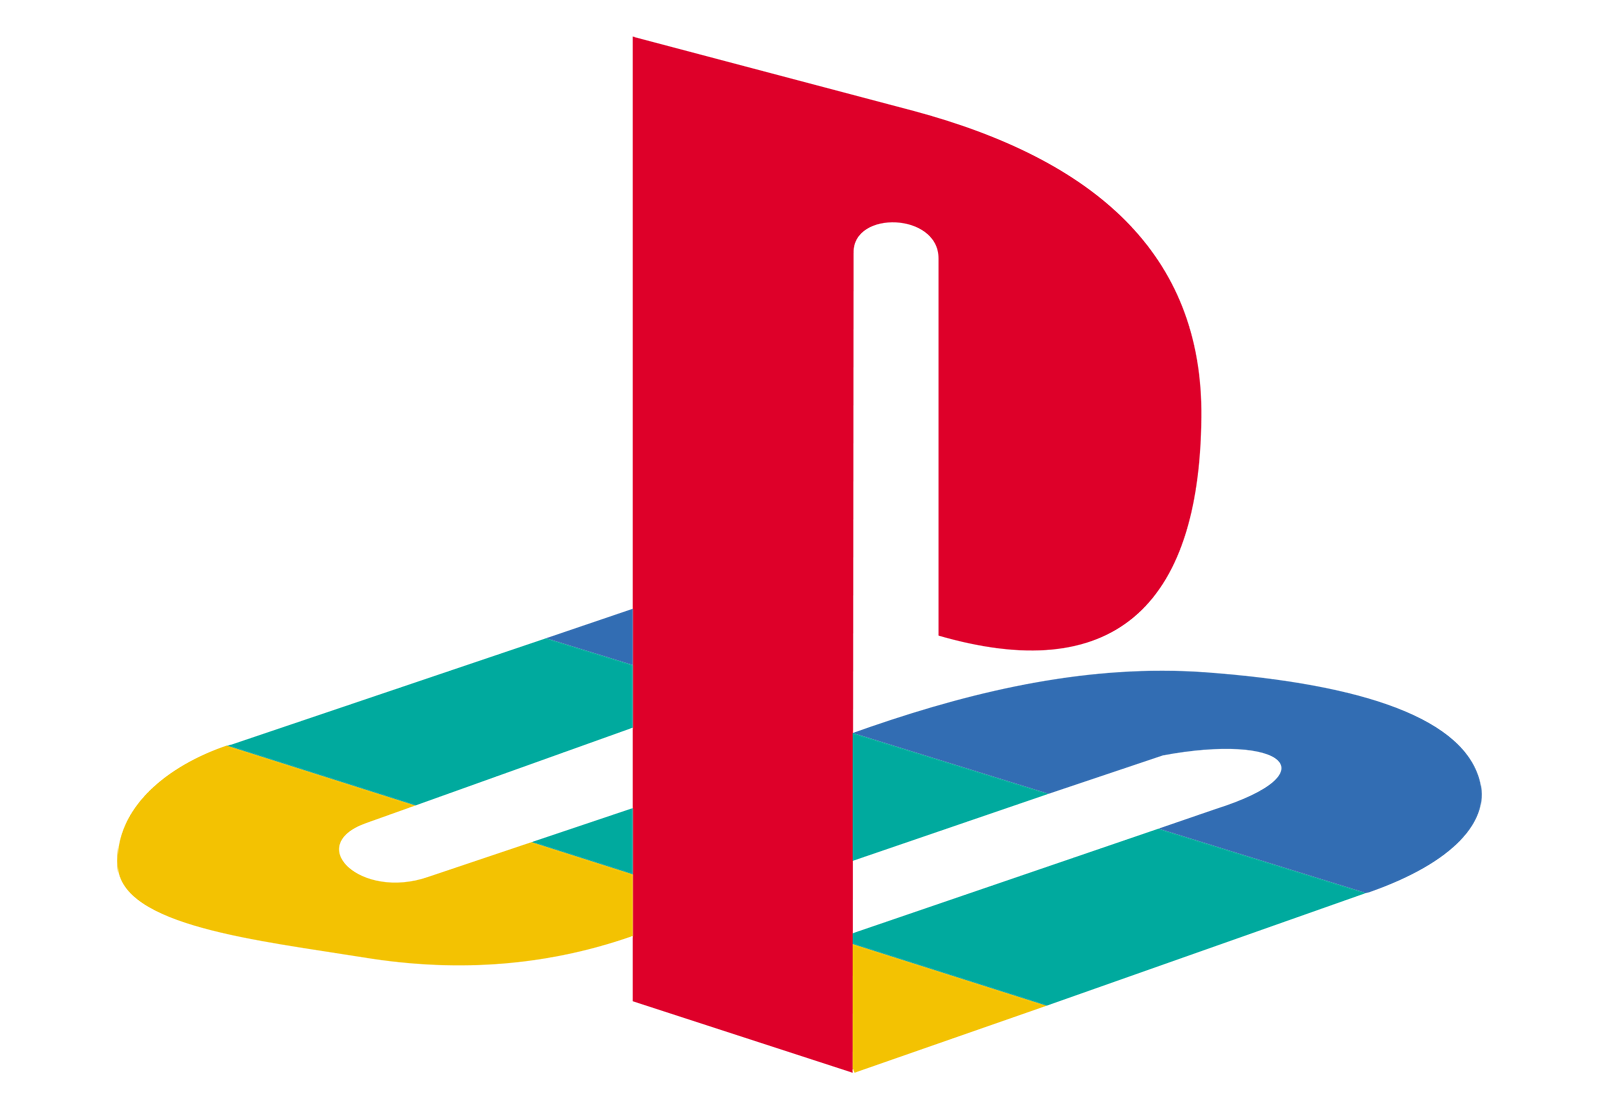 Sony Reveals First PlayStation 5 Details: 8K Graphics, Ray Tracing, SSDs, and PS4 Backwards Compatibility